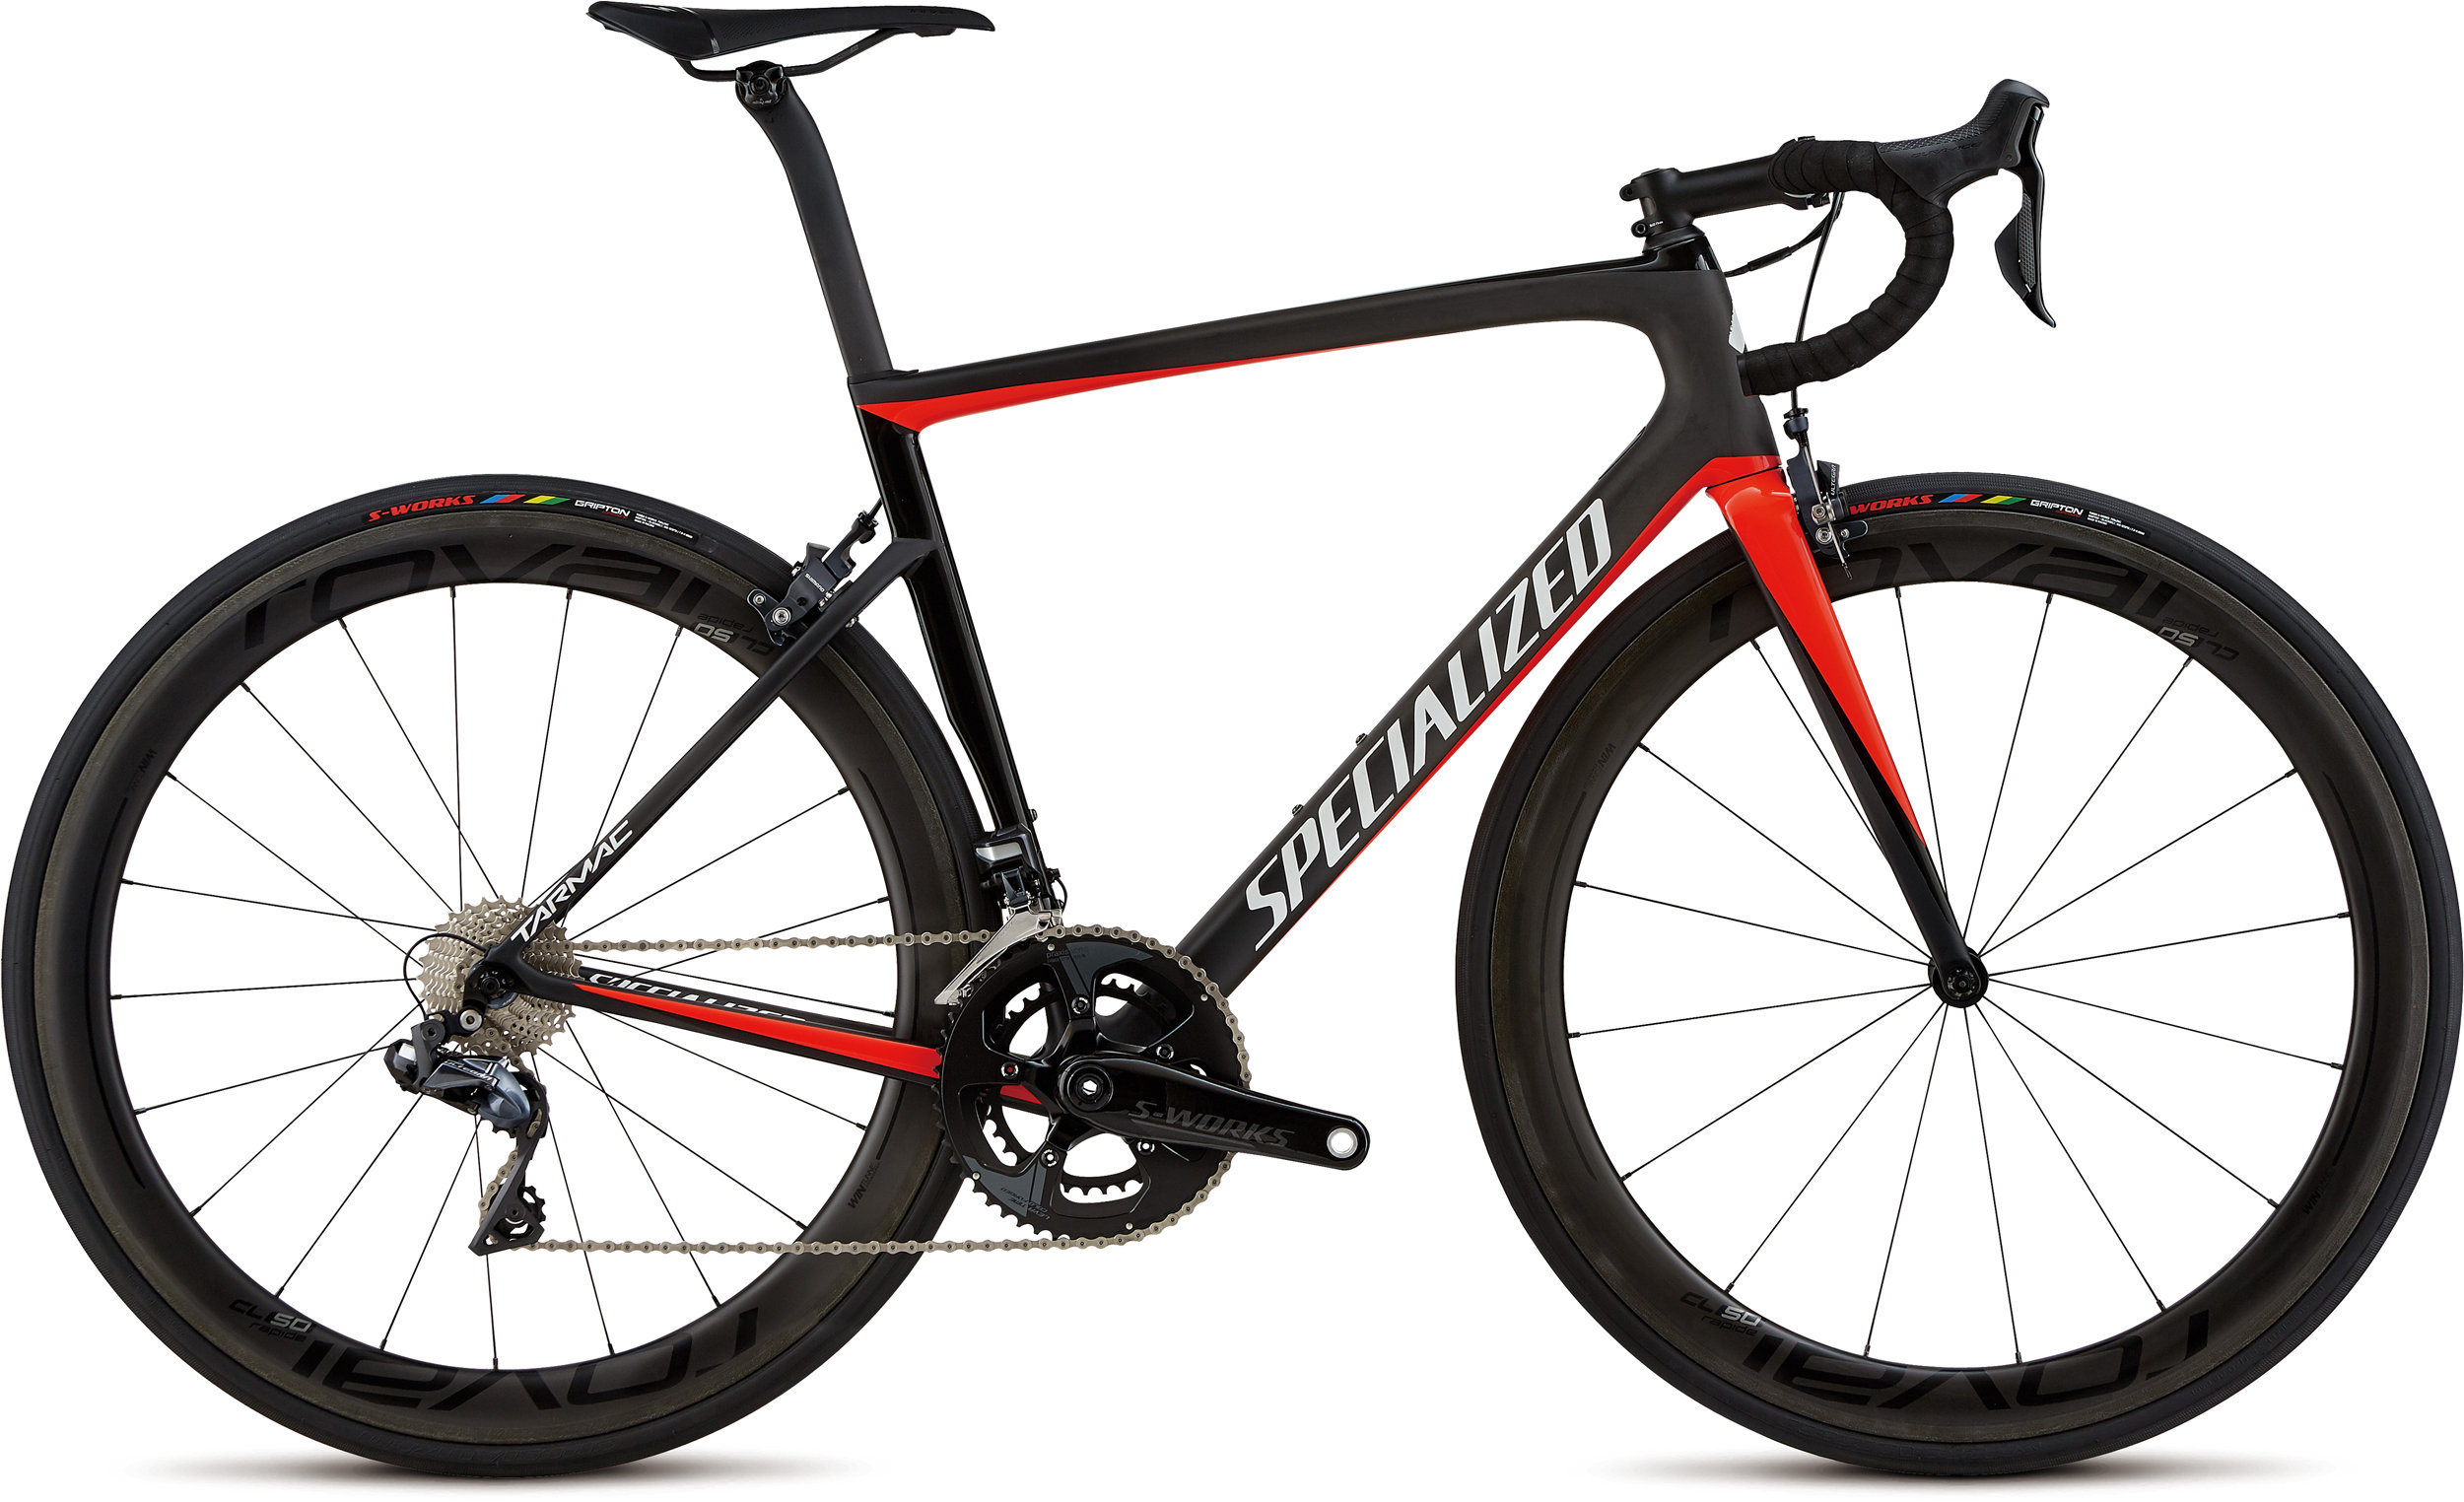 Specialized Men´s Tarmac Pro Carbon/Gloss Rkt Red/Tarmac Blk/Metallic Wht Slver 56 - Alpha Bikes